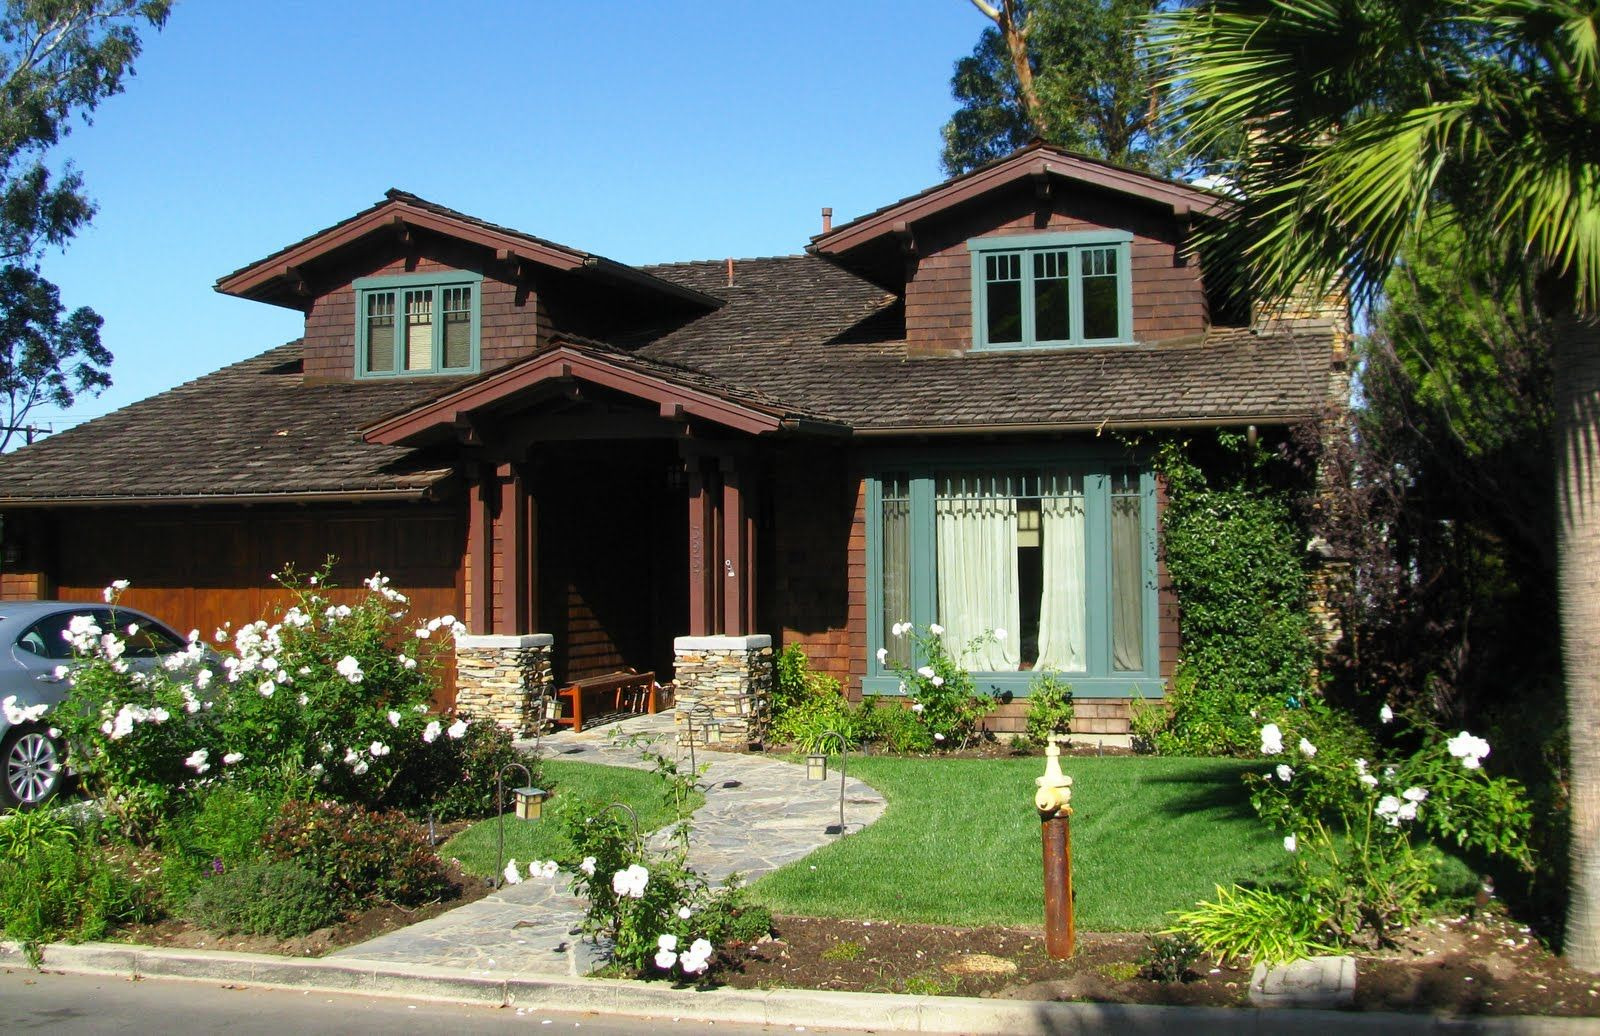 1000+ images about craftsman style houses on Pinterest - ^